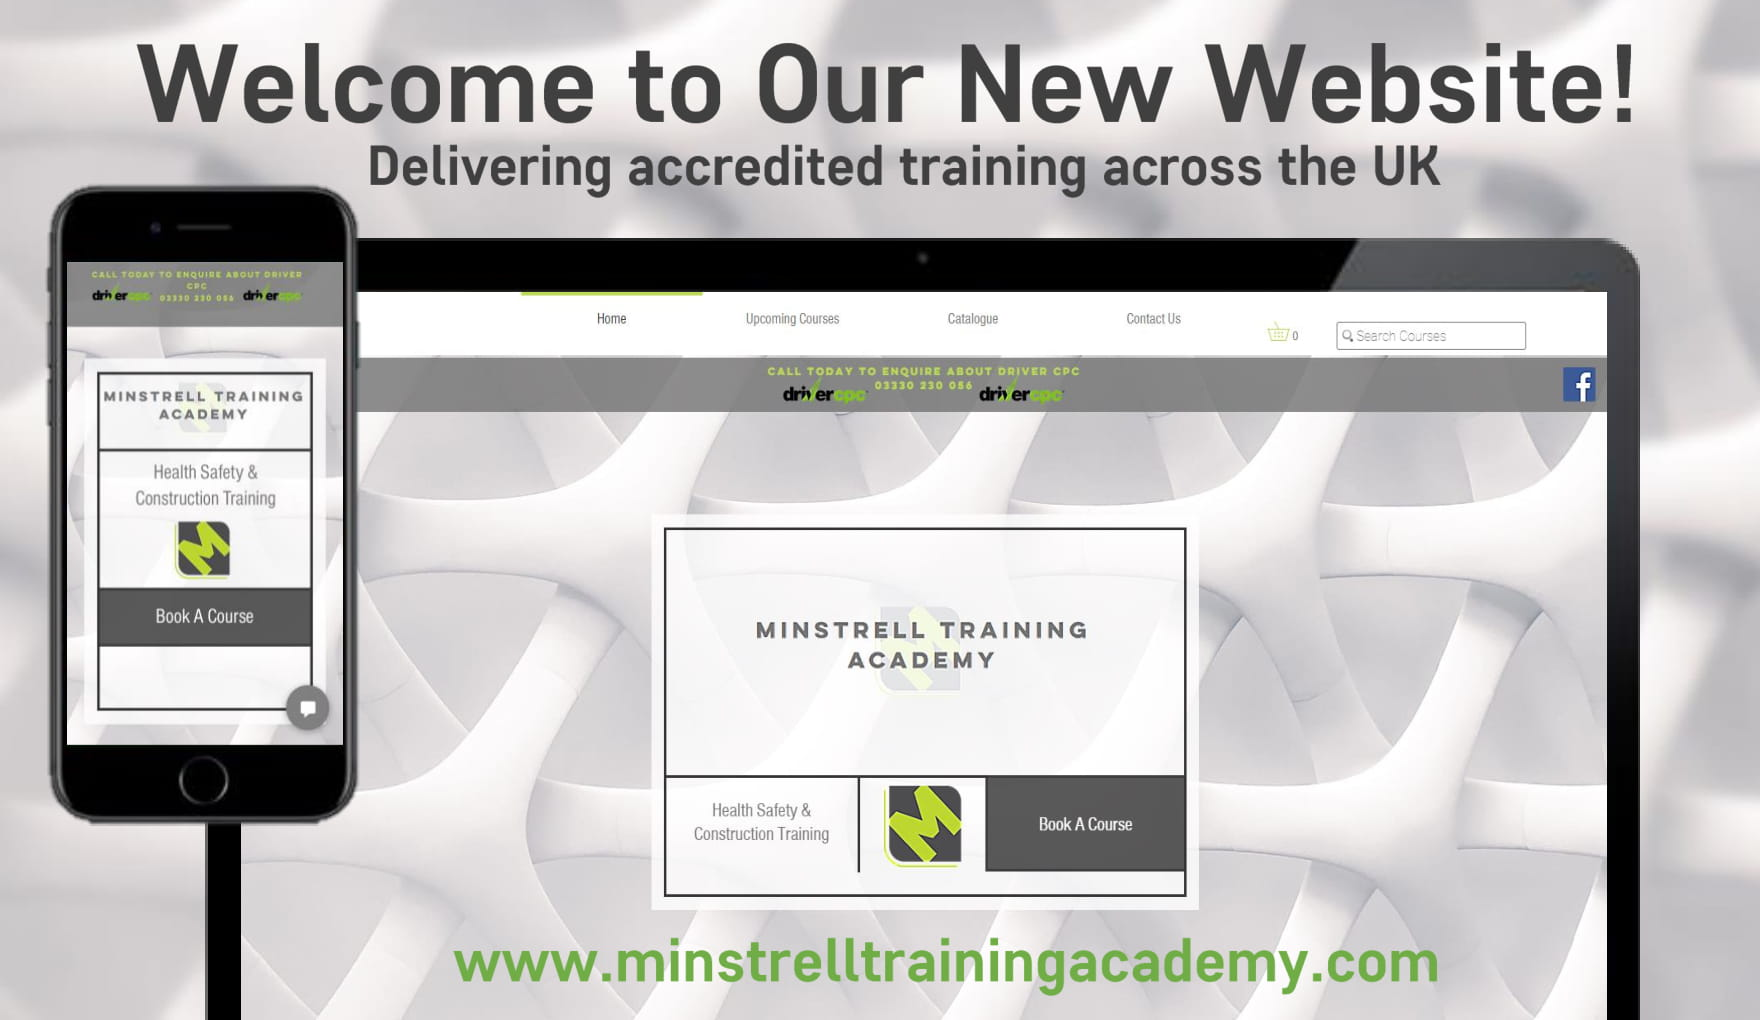 http://www.minstrellrecruitment.com/upload/Banner3-1.jpg